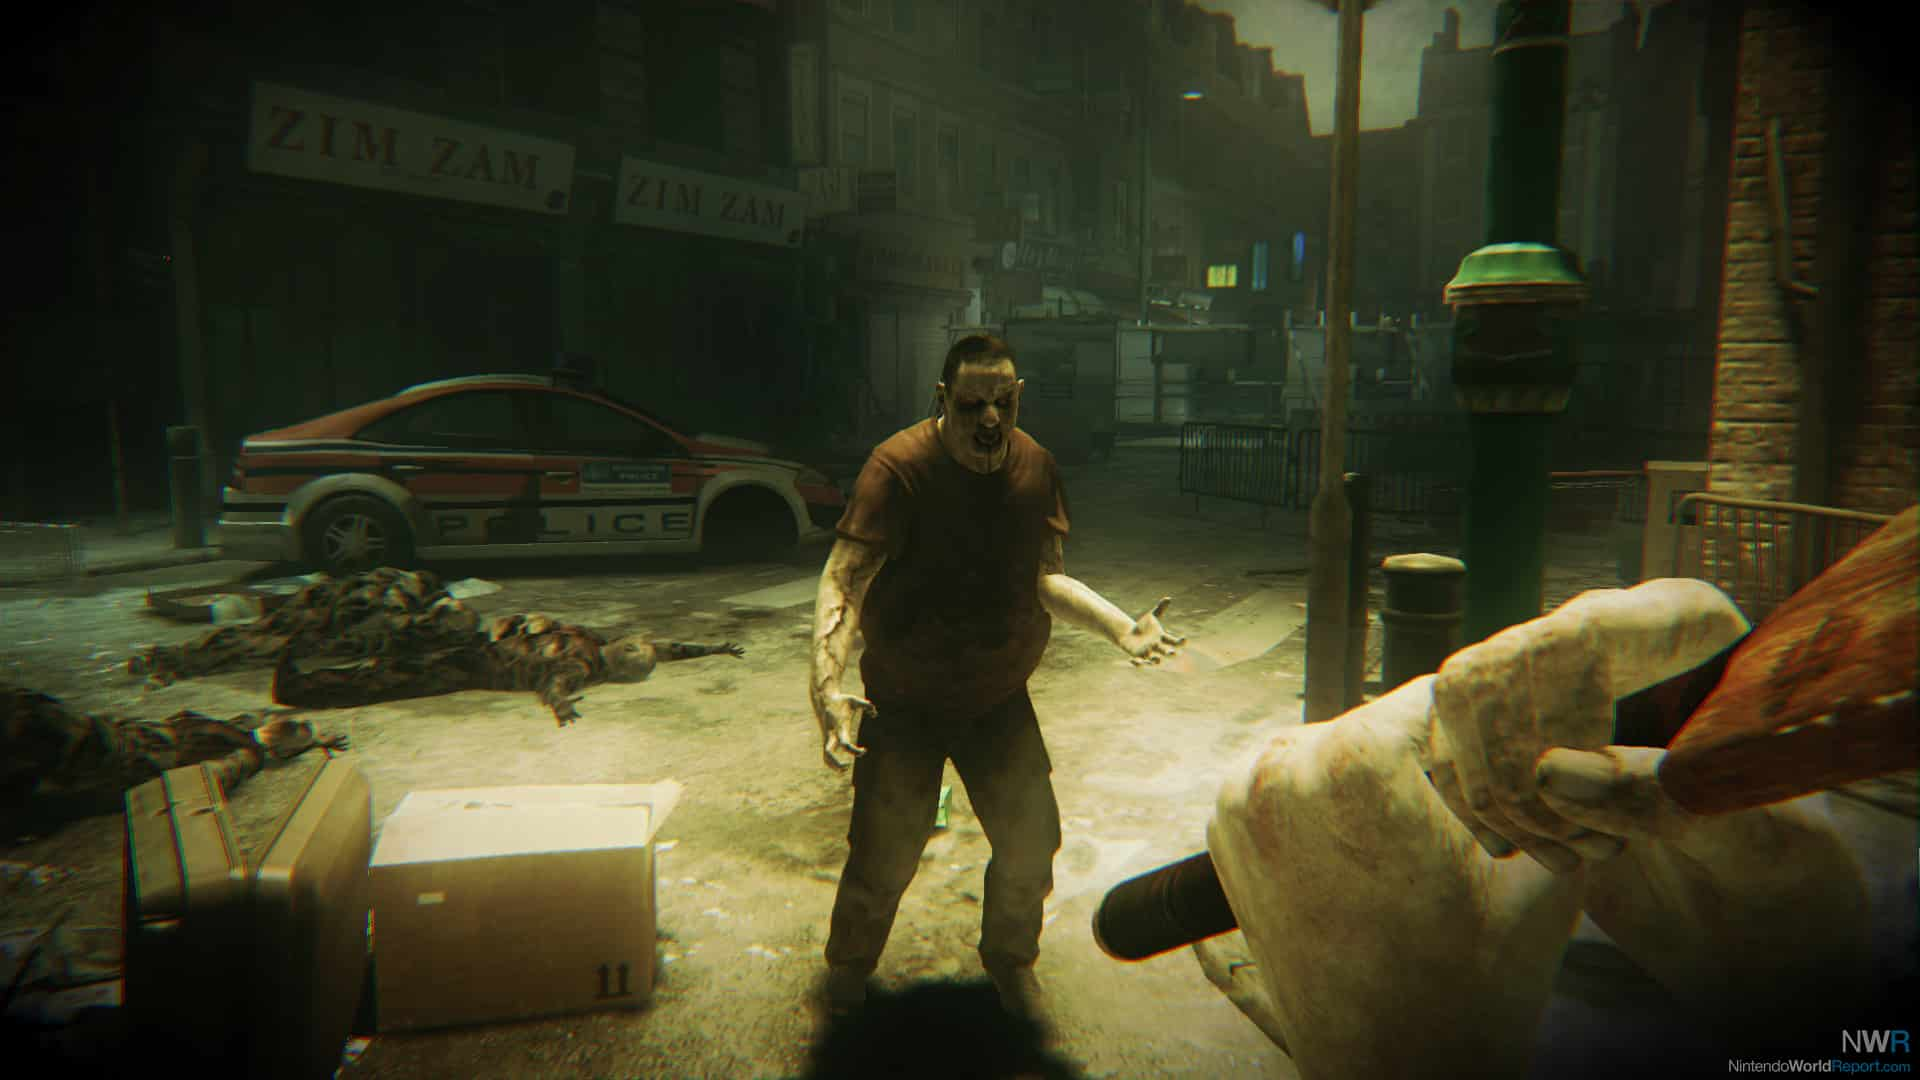 ZombiU multiplayer Zombie King Wii U Ubisoft is greatness on a tablet GamePad